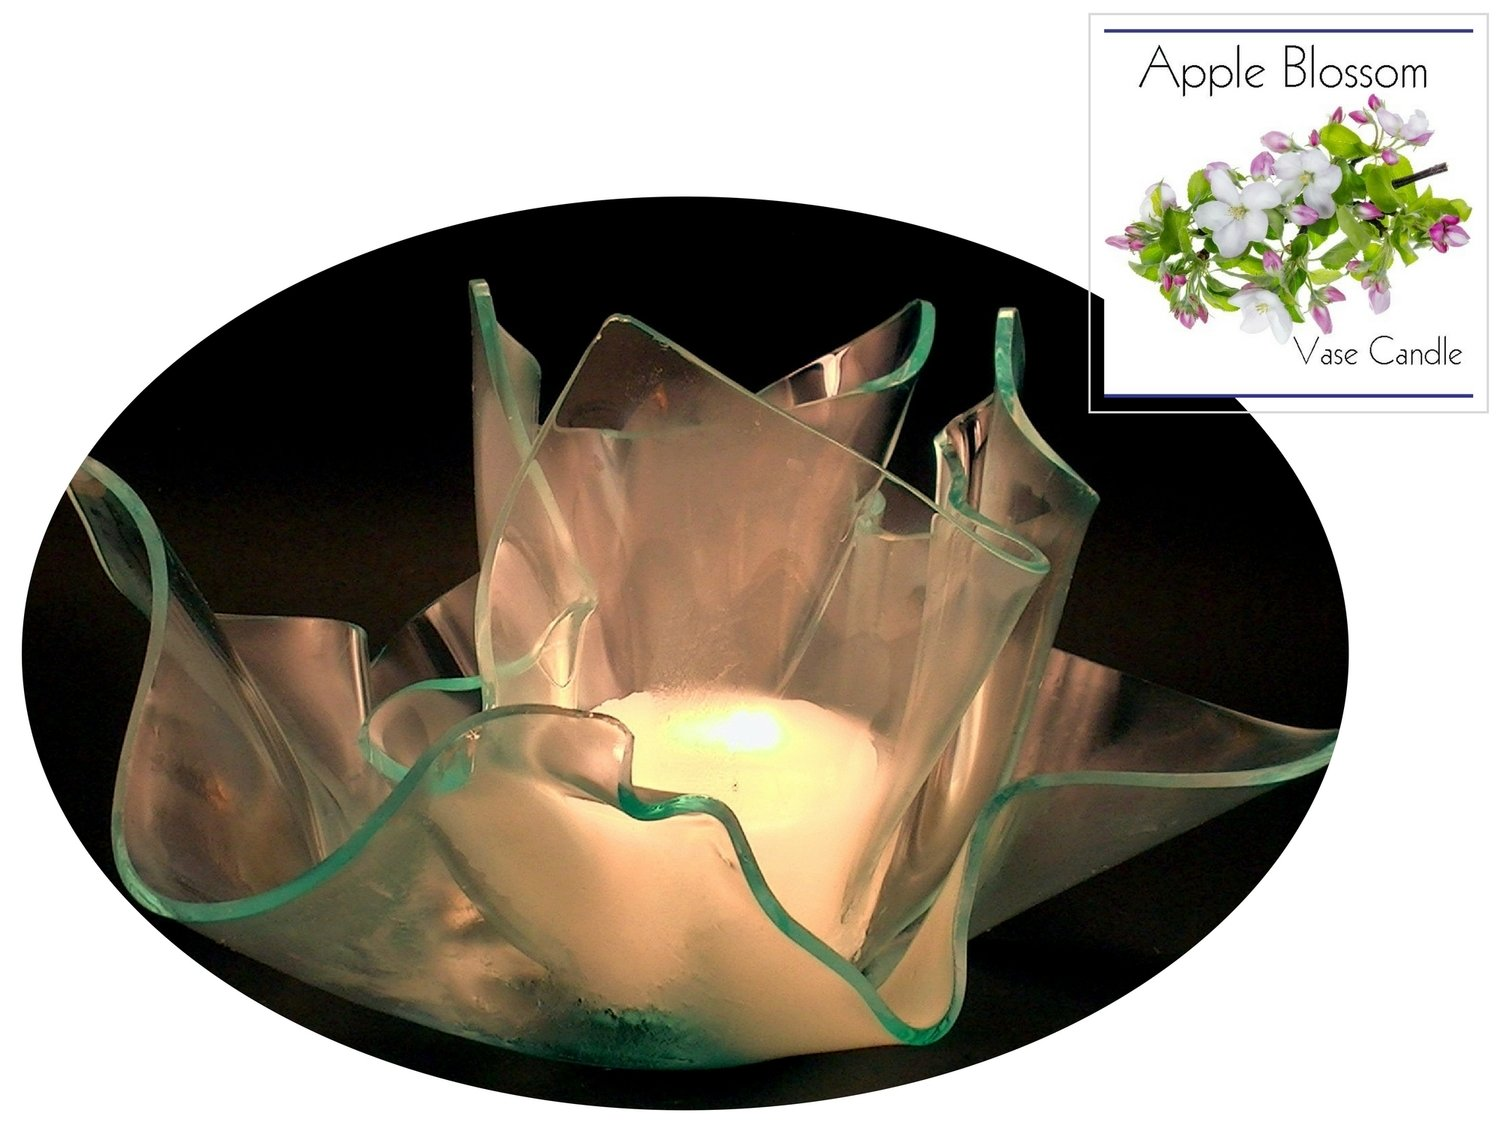 2 Apple Blossom Candle Refills |Clear Satin Vase & Dish Set